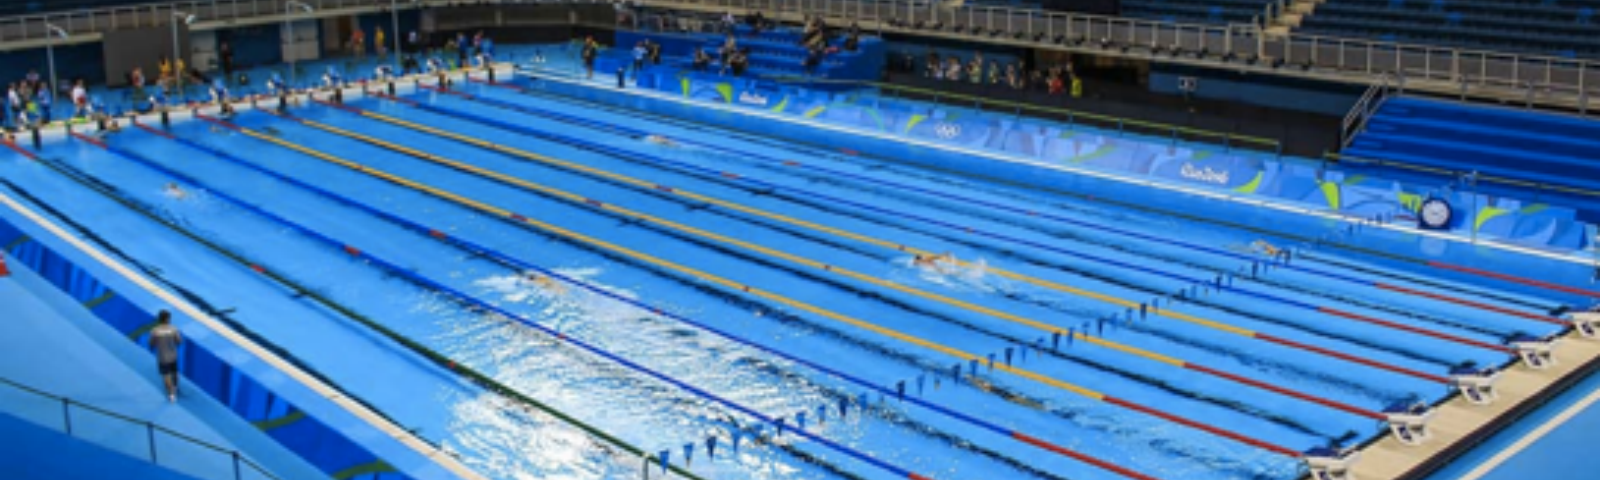 Unfair Advantages: Circular Current in the 2016 Rio Olympic Pool